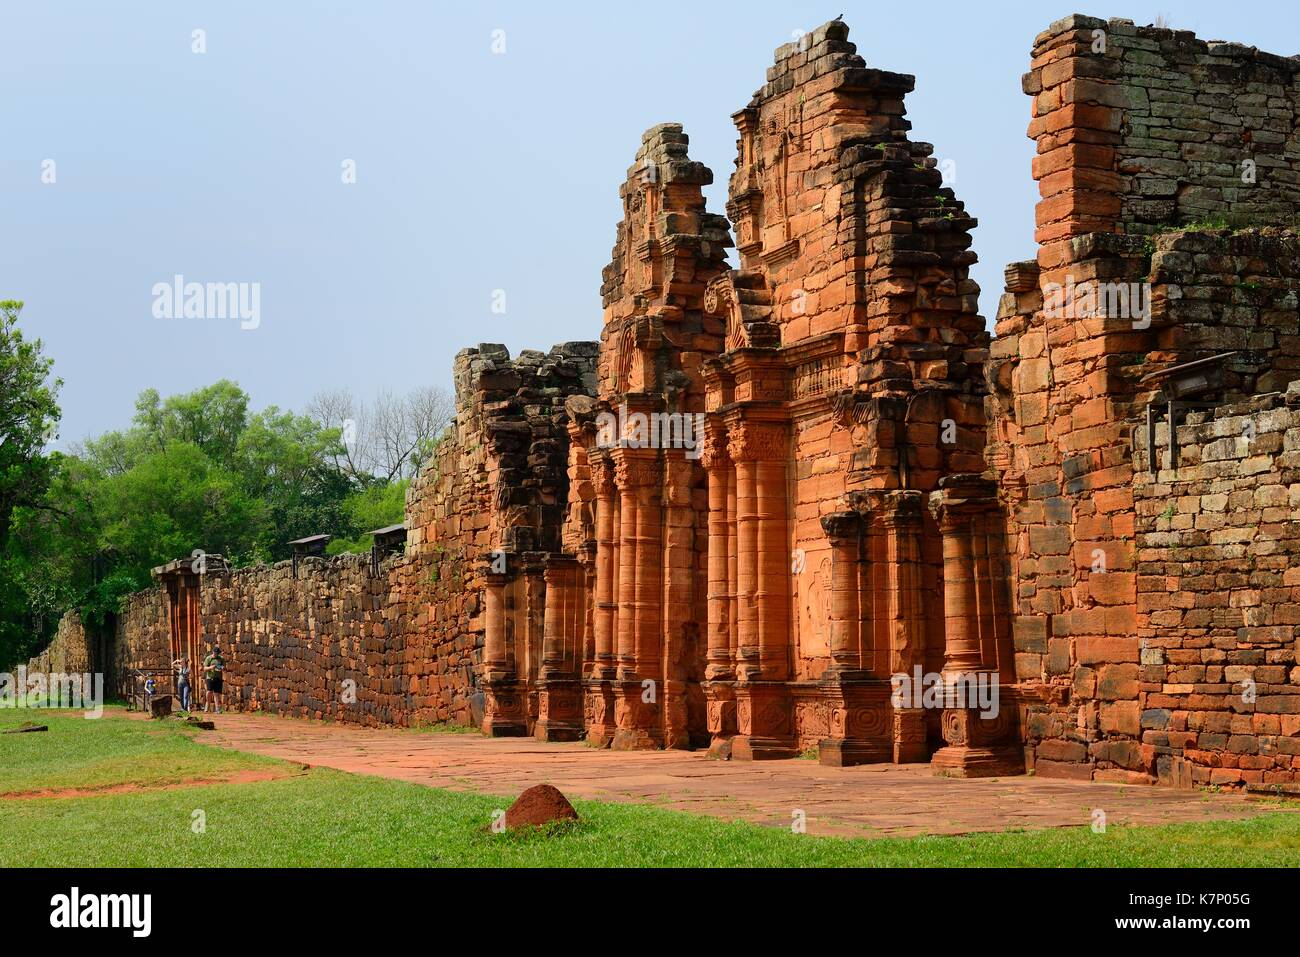 Ruins of the Jesuit Reduction San Ignacio Minì, UNESCO World Heritage Site, San Ignacio, Misiones, Argentina - Stock Image